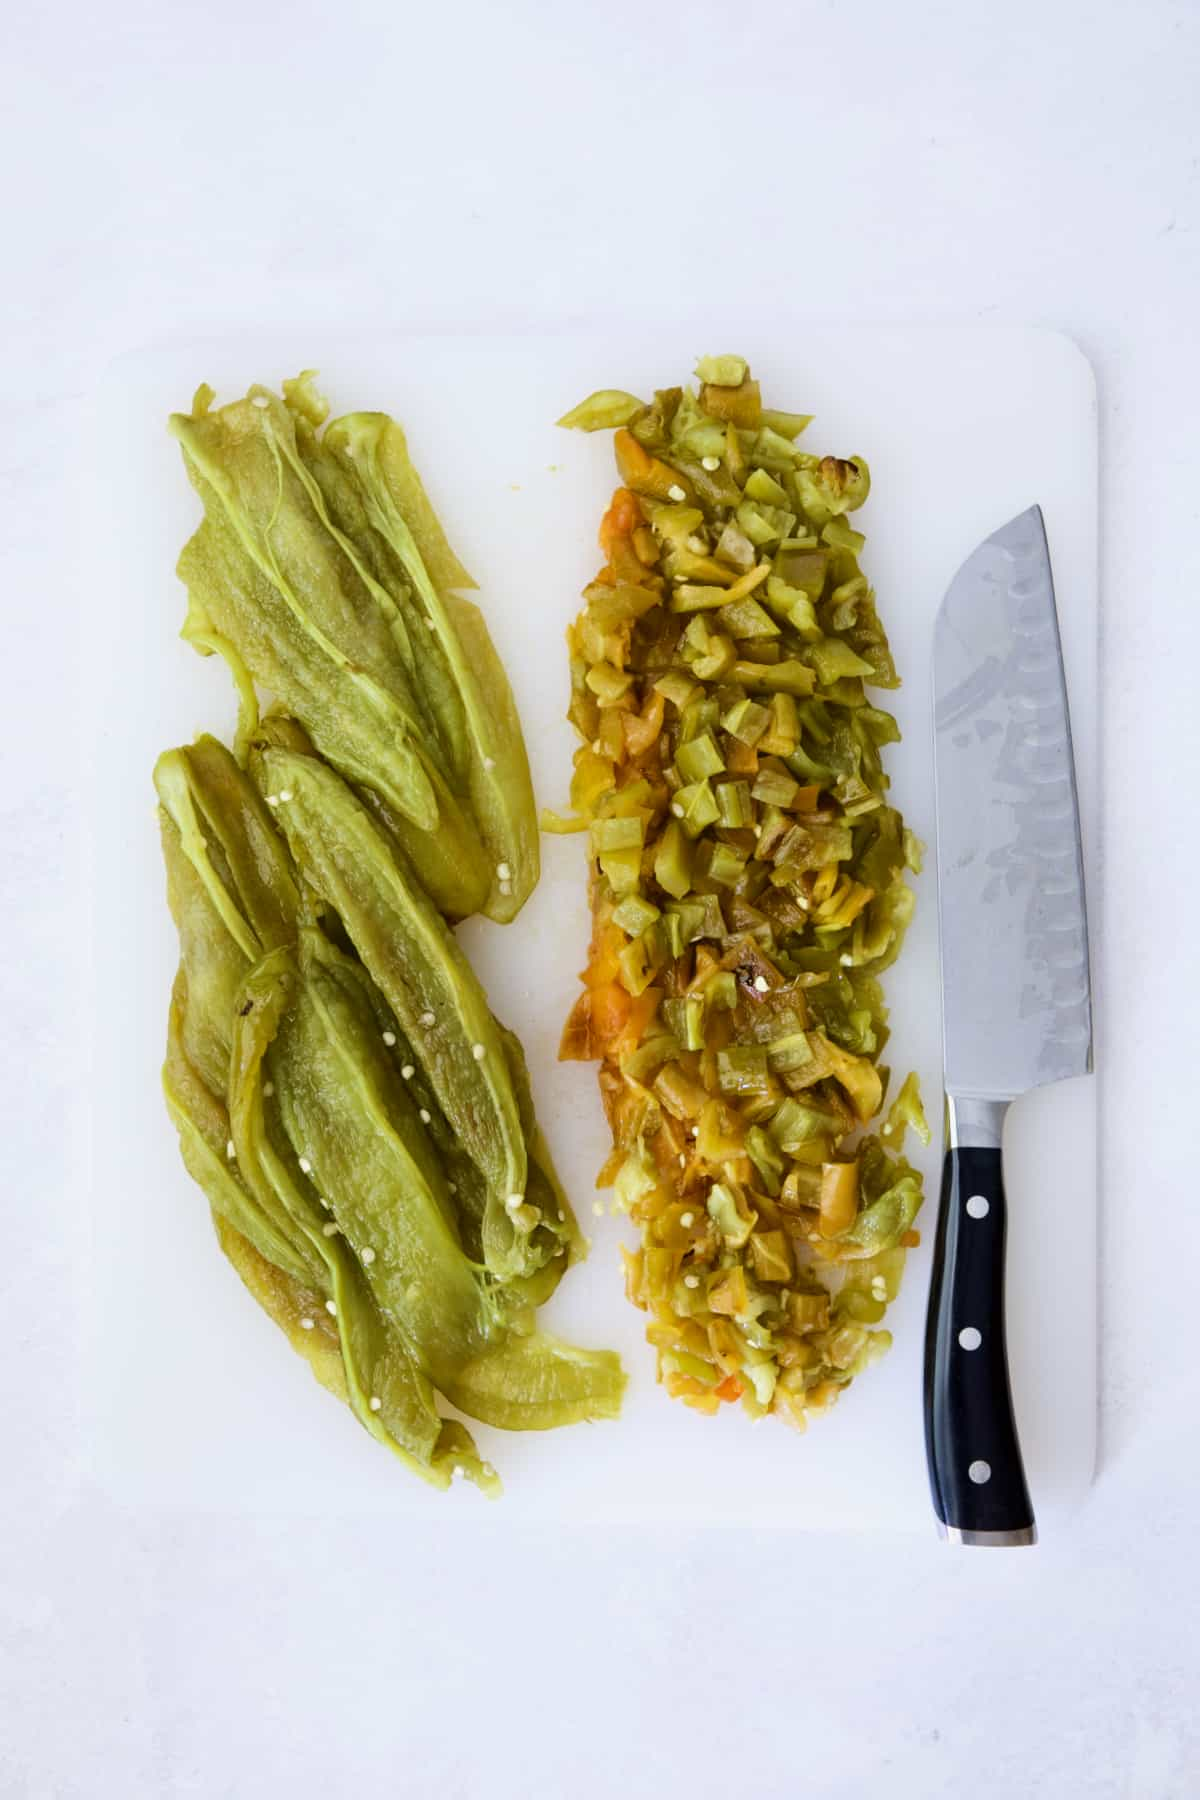 Seeded and roasted Hatch green chiles with half diced on white cutting board.